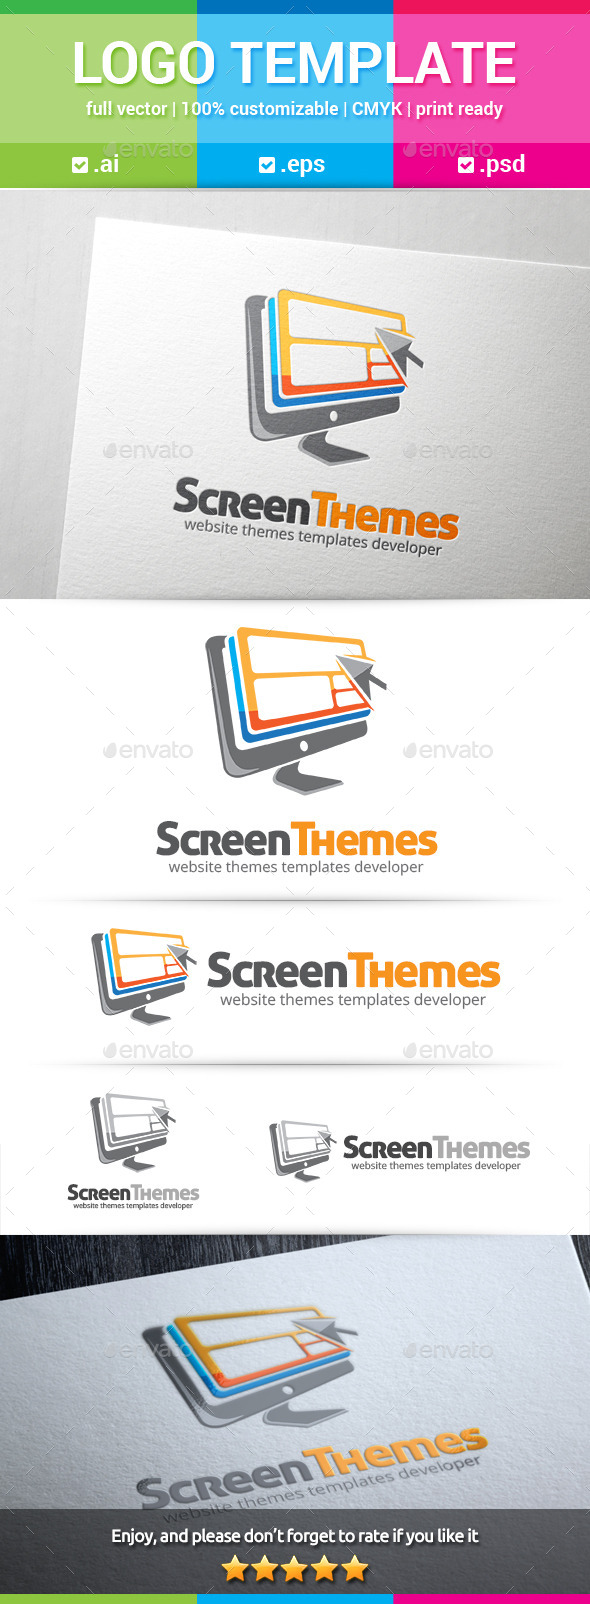 Screen Theme Logo - Objects Logo Templates